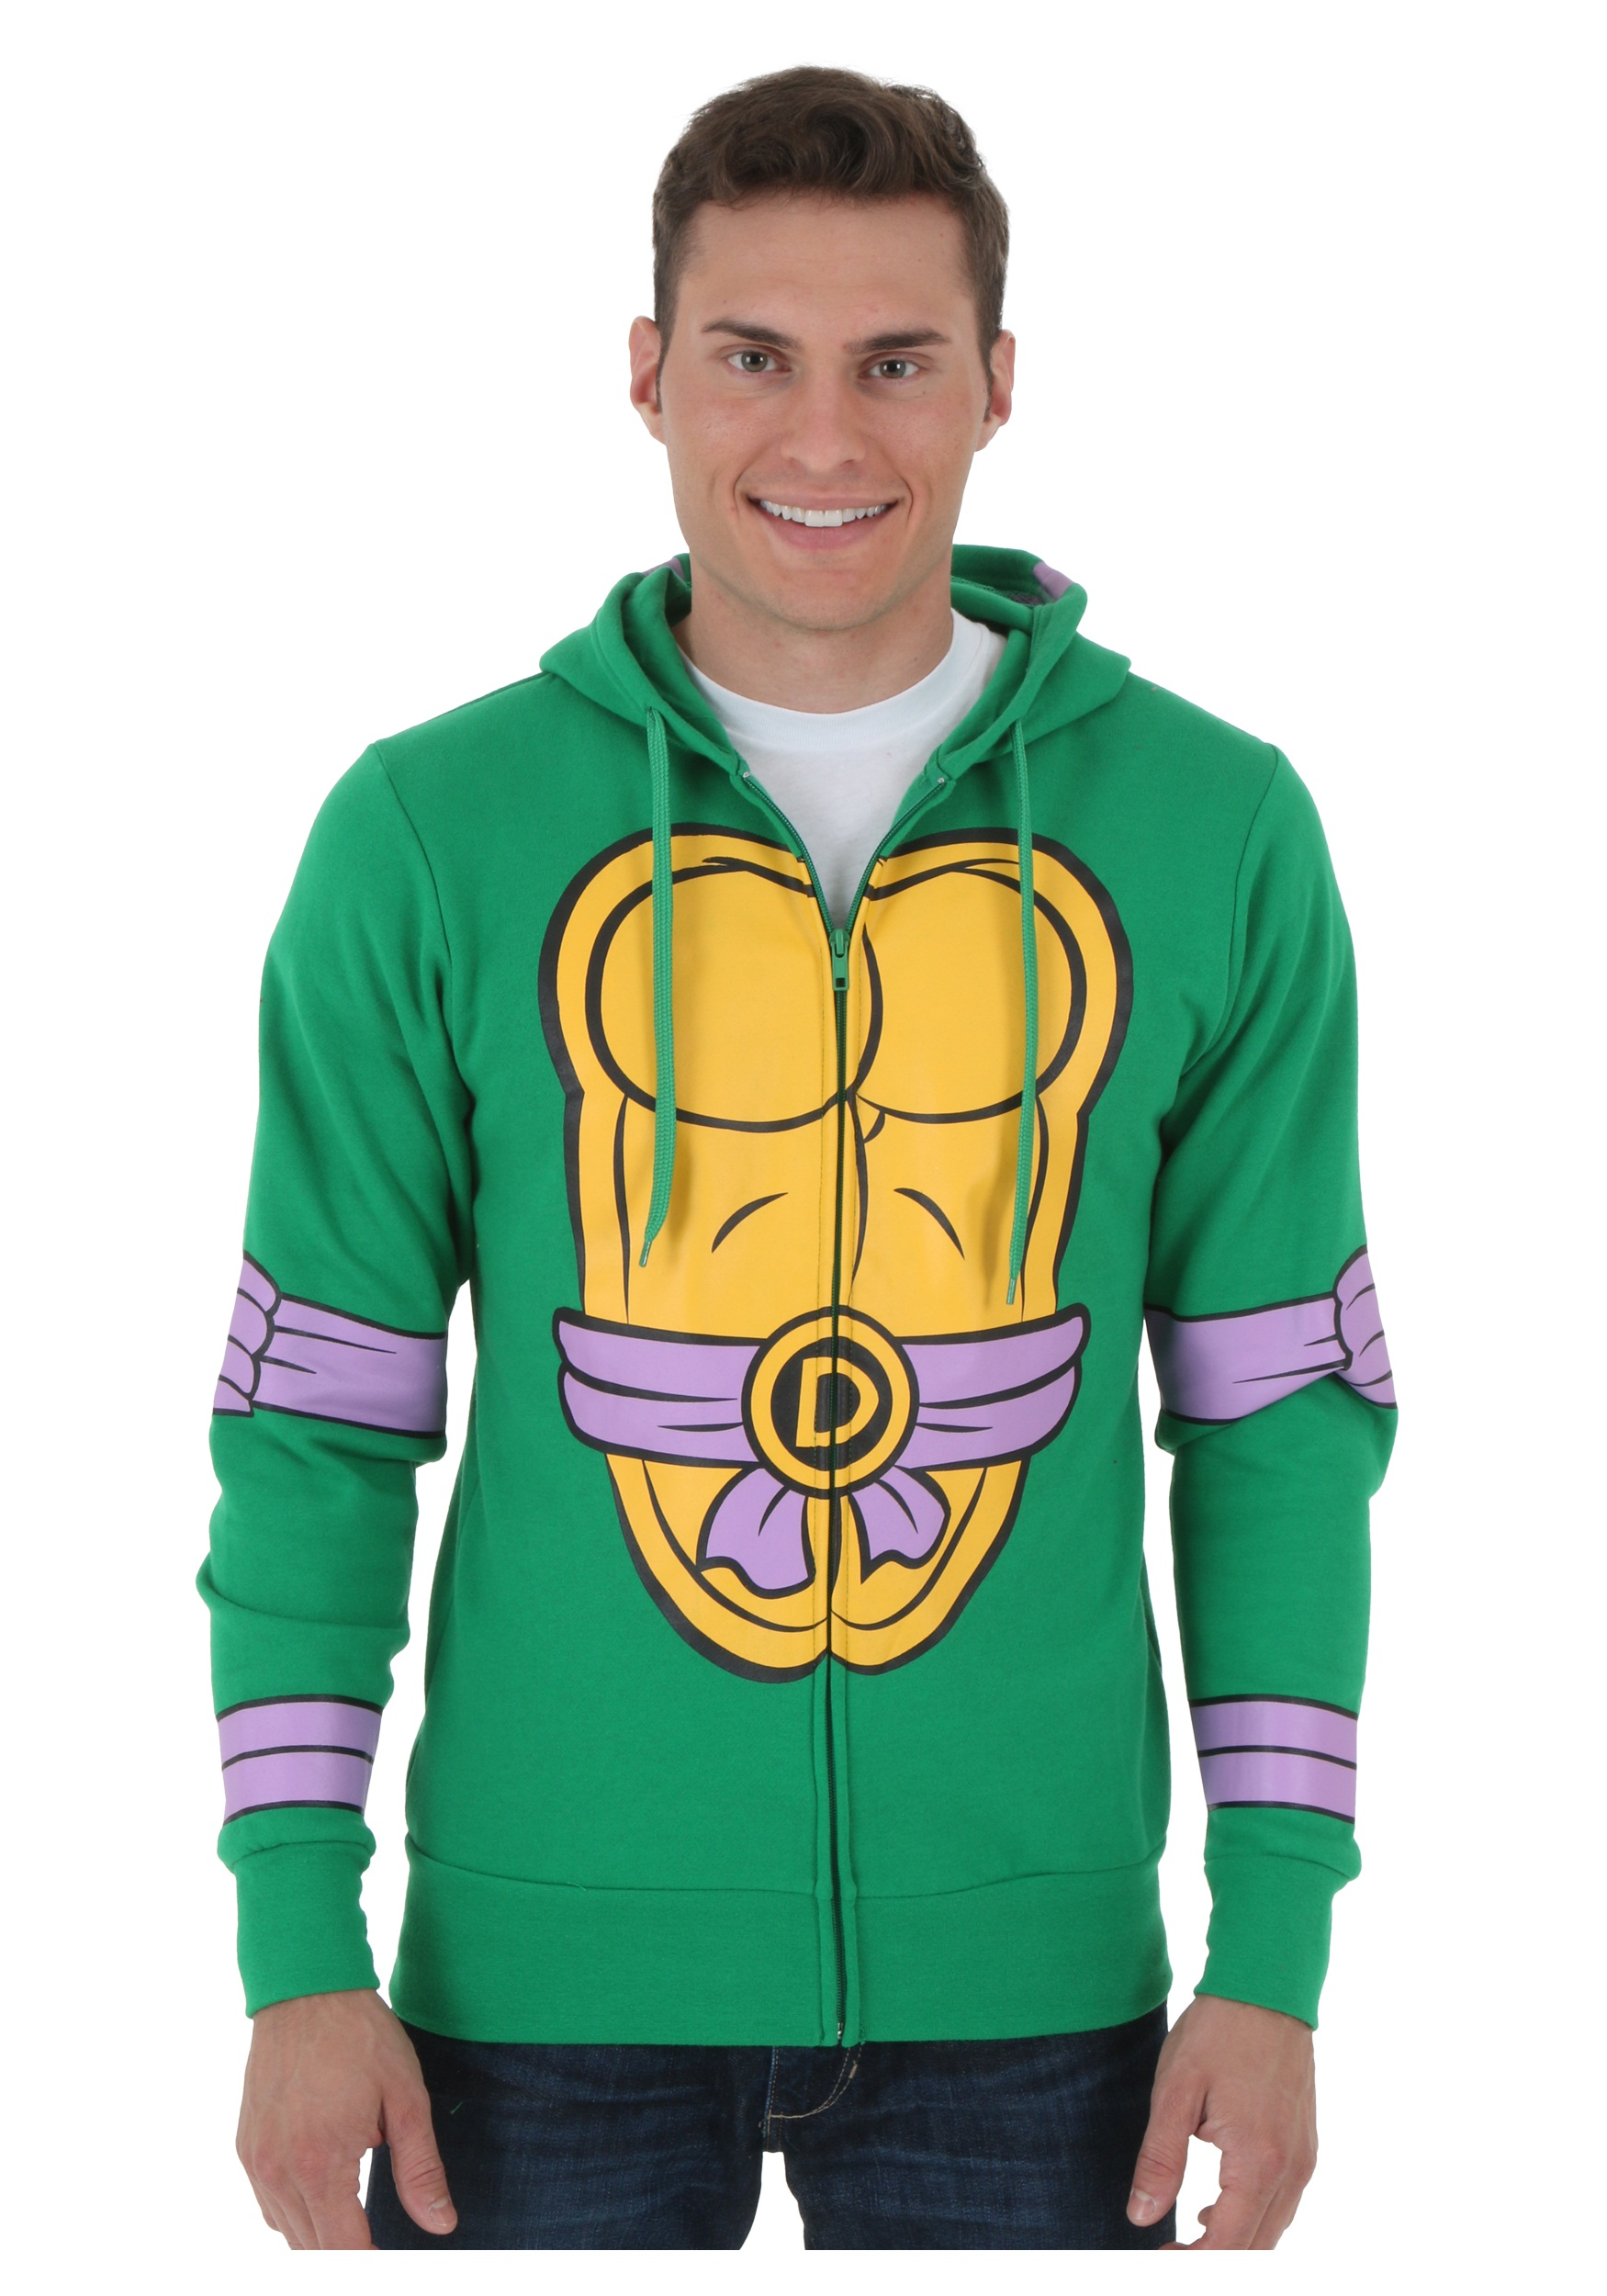 Image of Zip Hoodie TMNT Donatello Costume